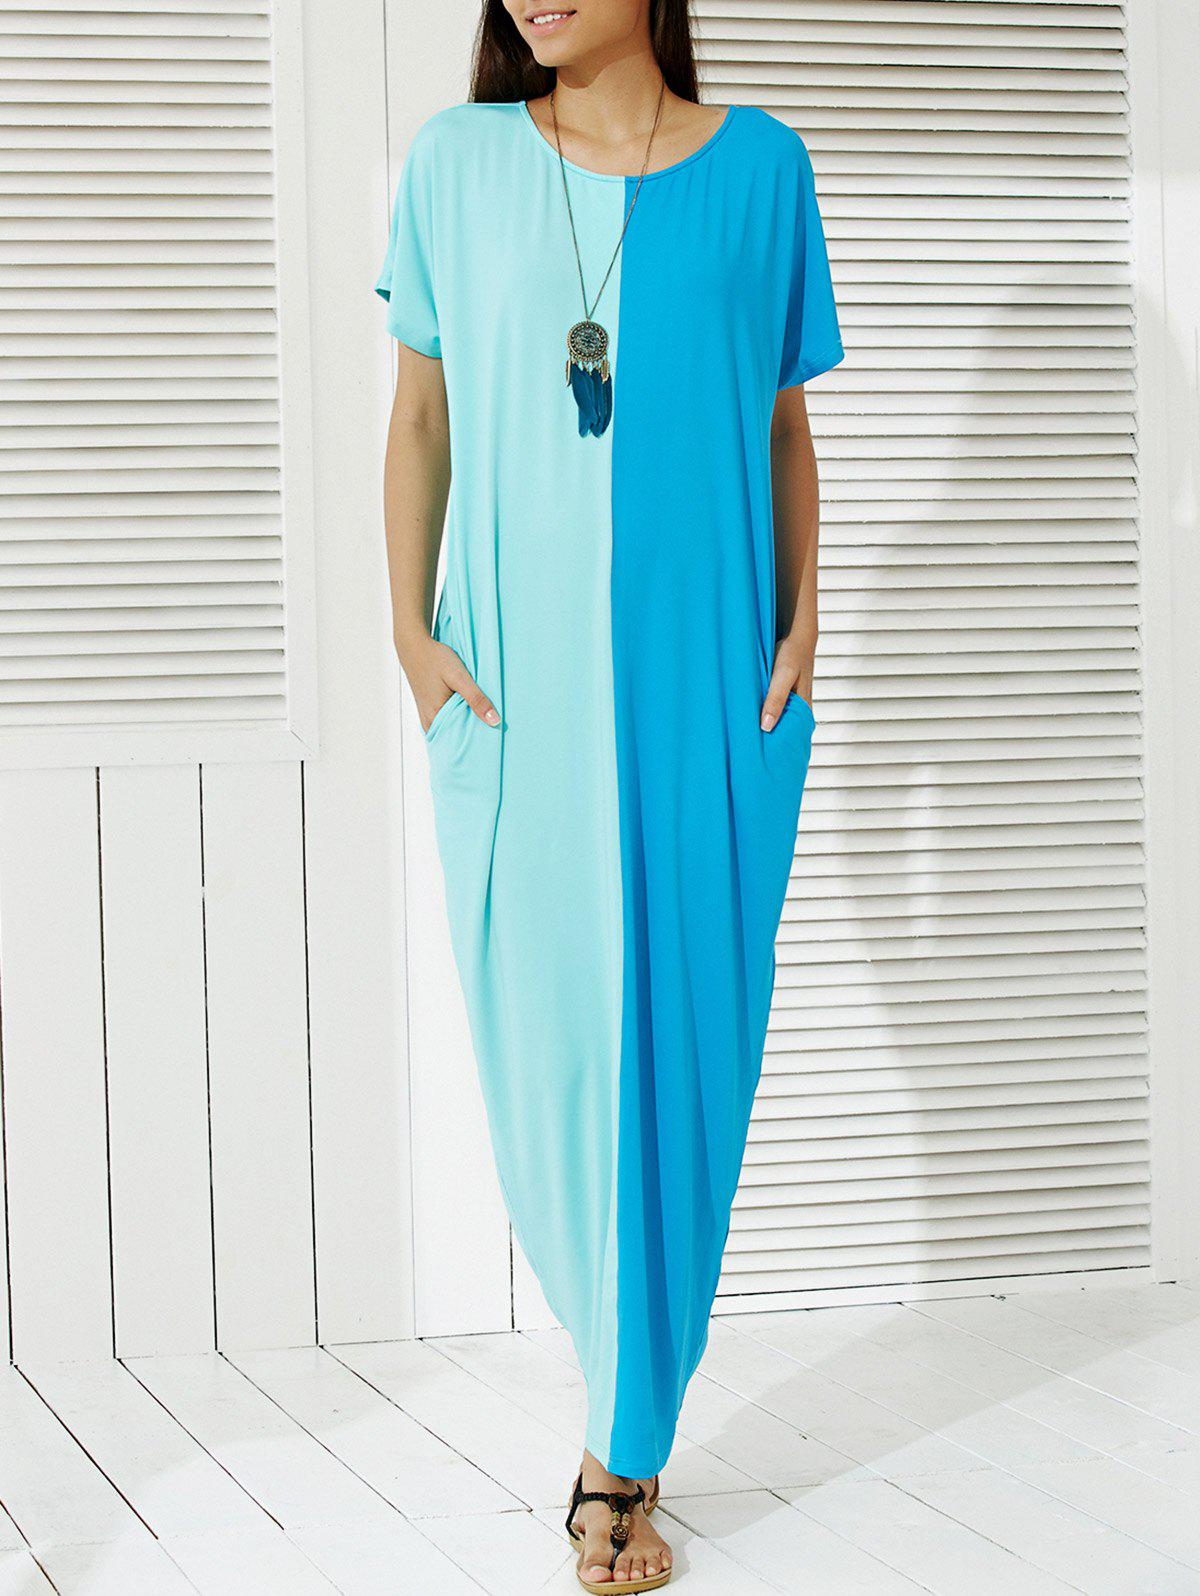 Fashionable Half Sleeve Color Block Maxi Dress For Women